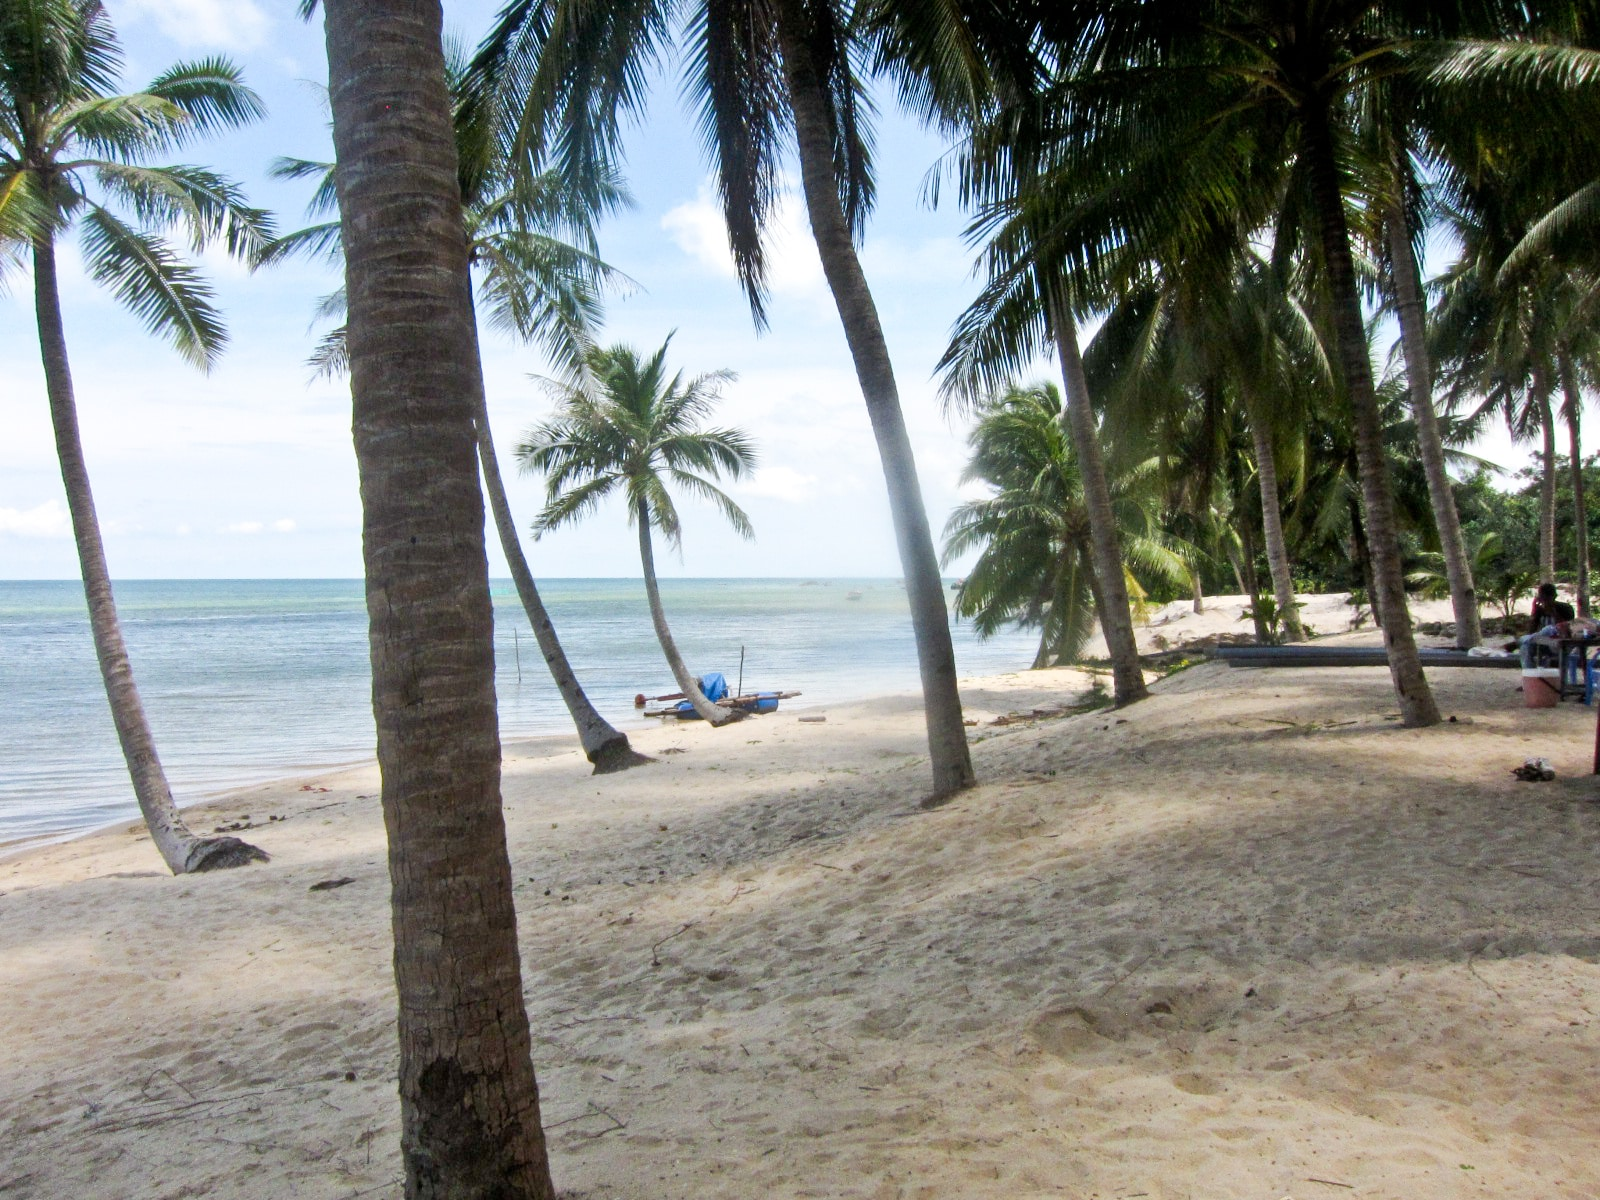 Palm Lined Beach in Phu Quoc Vietnam